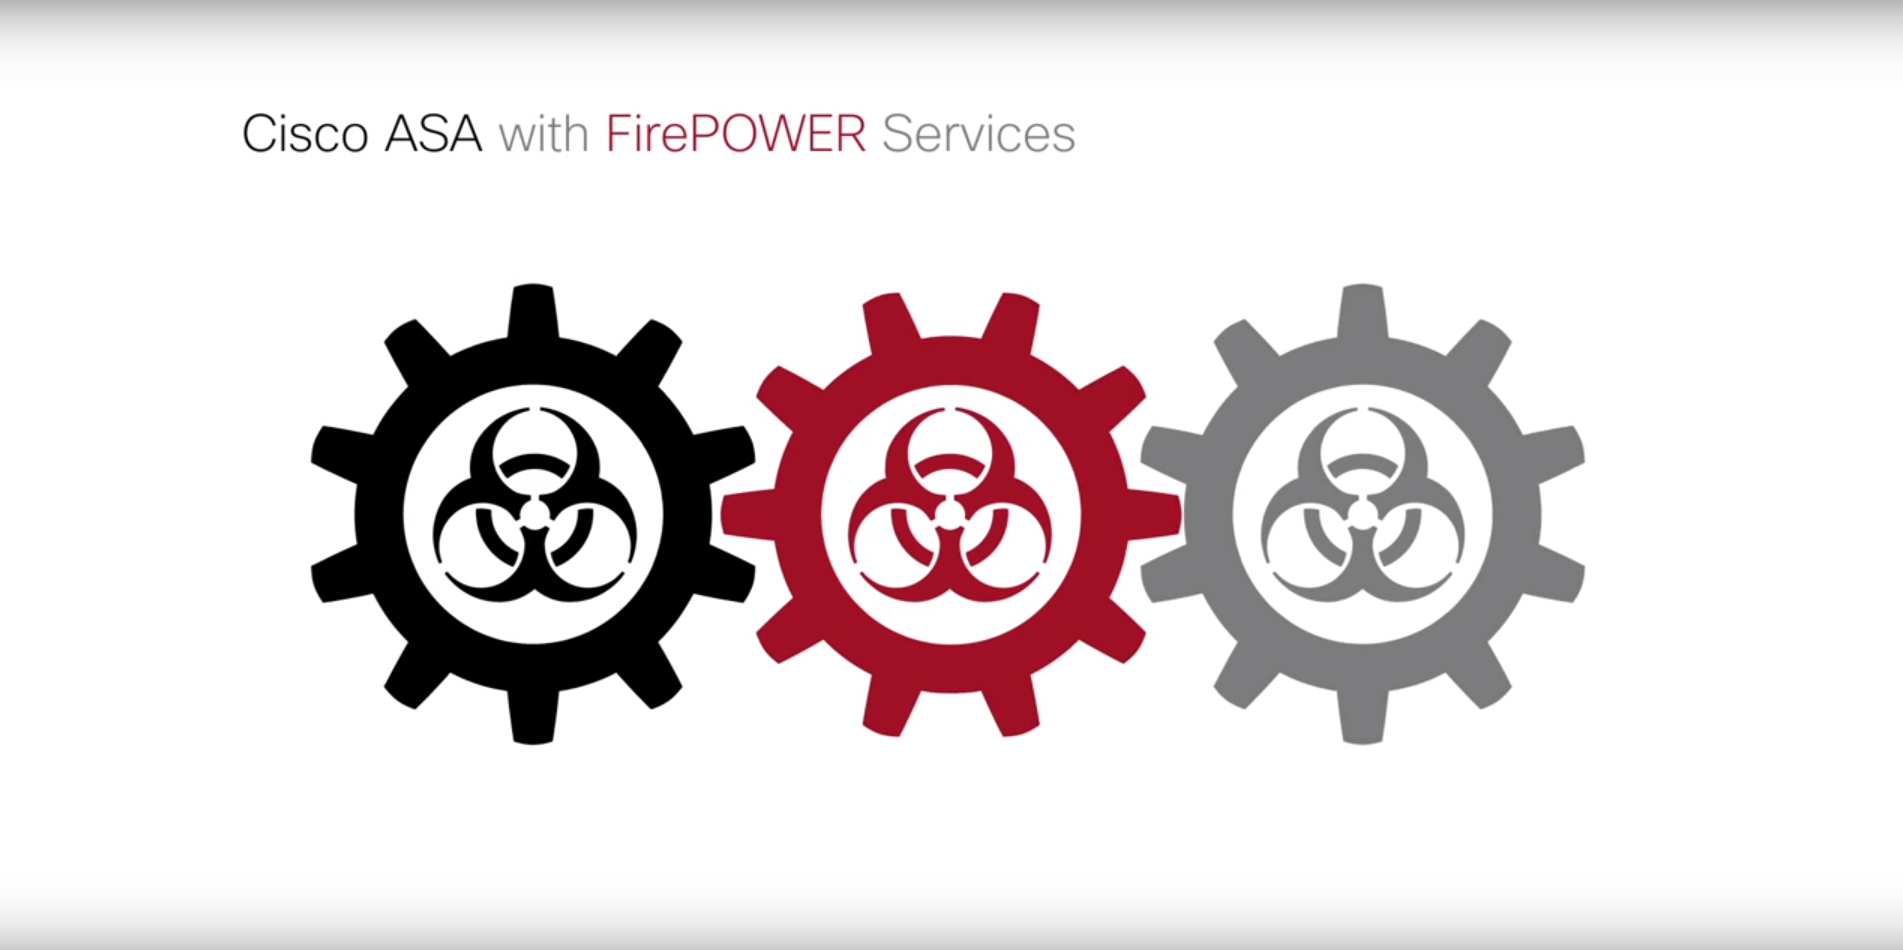 Introducing Cisco ASA with FirePOWER Services